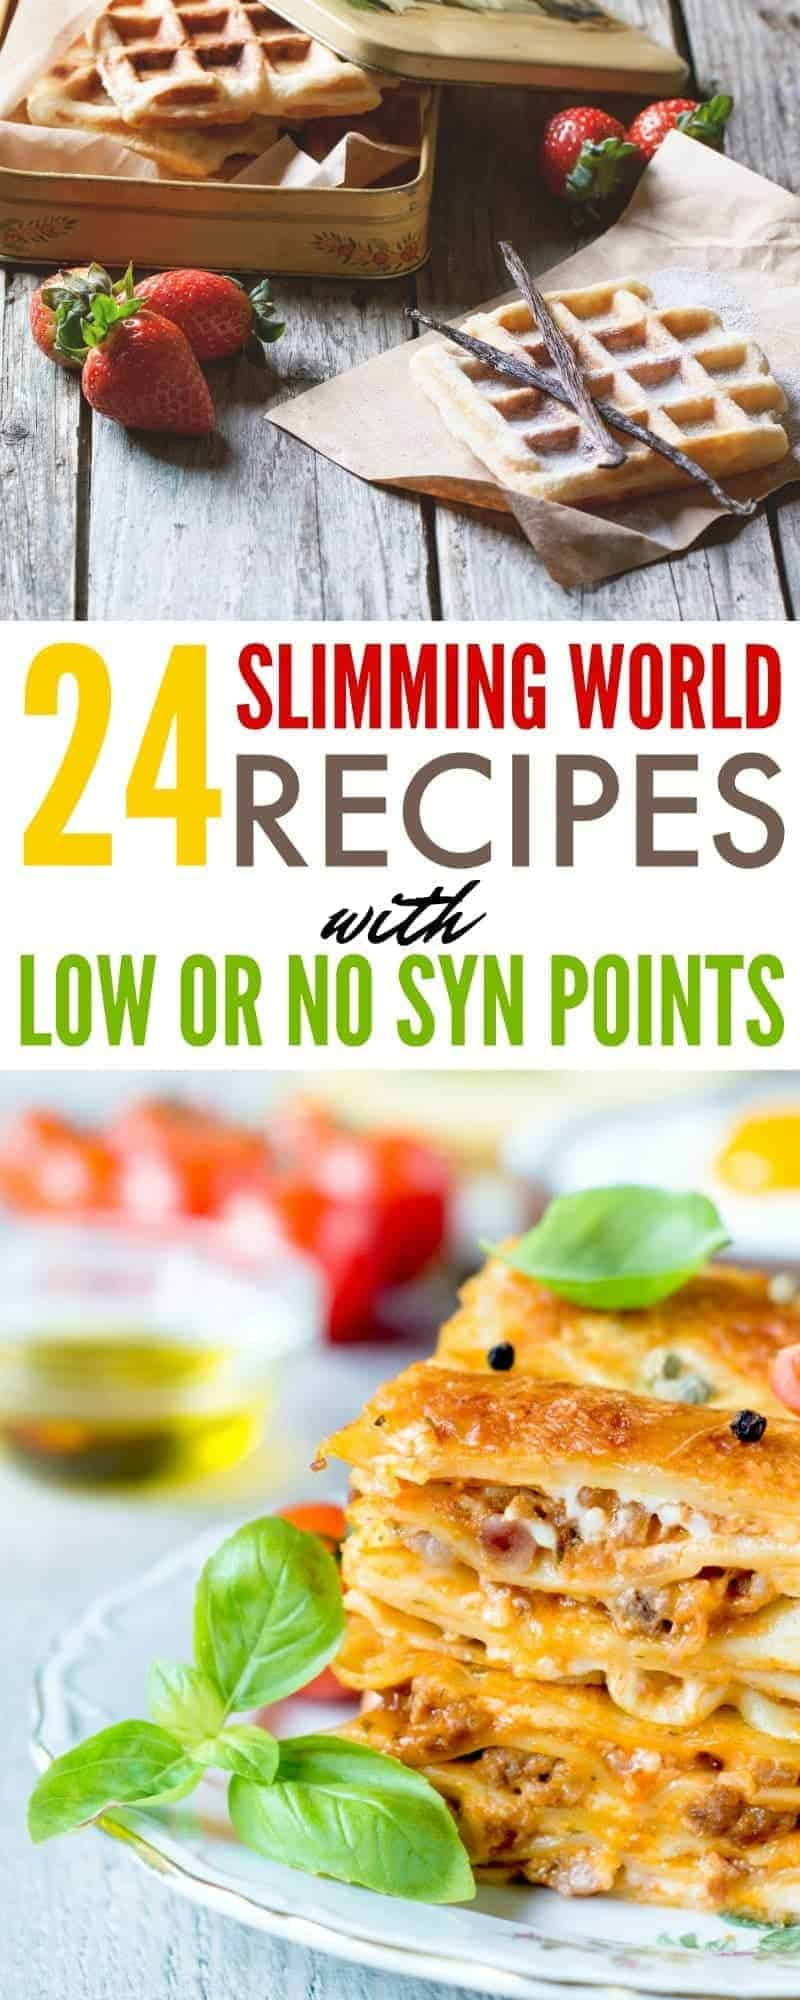 24 Slimming World Recipes with Low or No Syn Points - delicious options for Slimming World diet followers or anyone looking for healthier recipes.